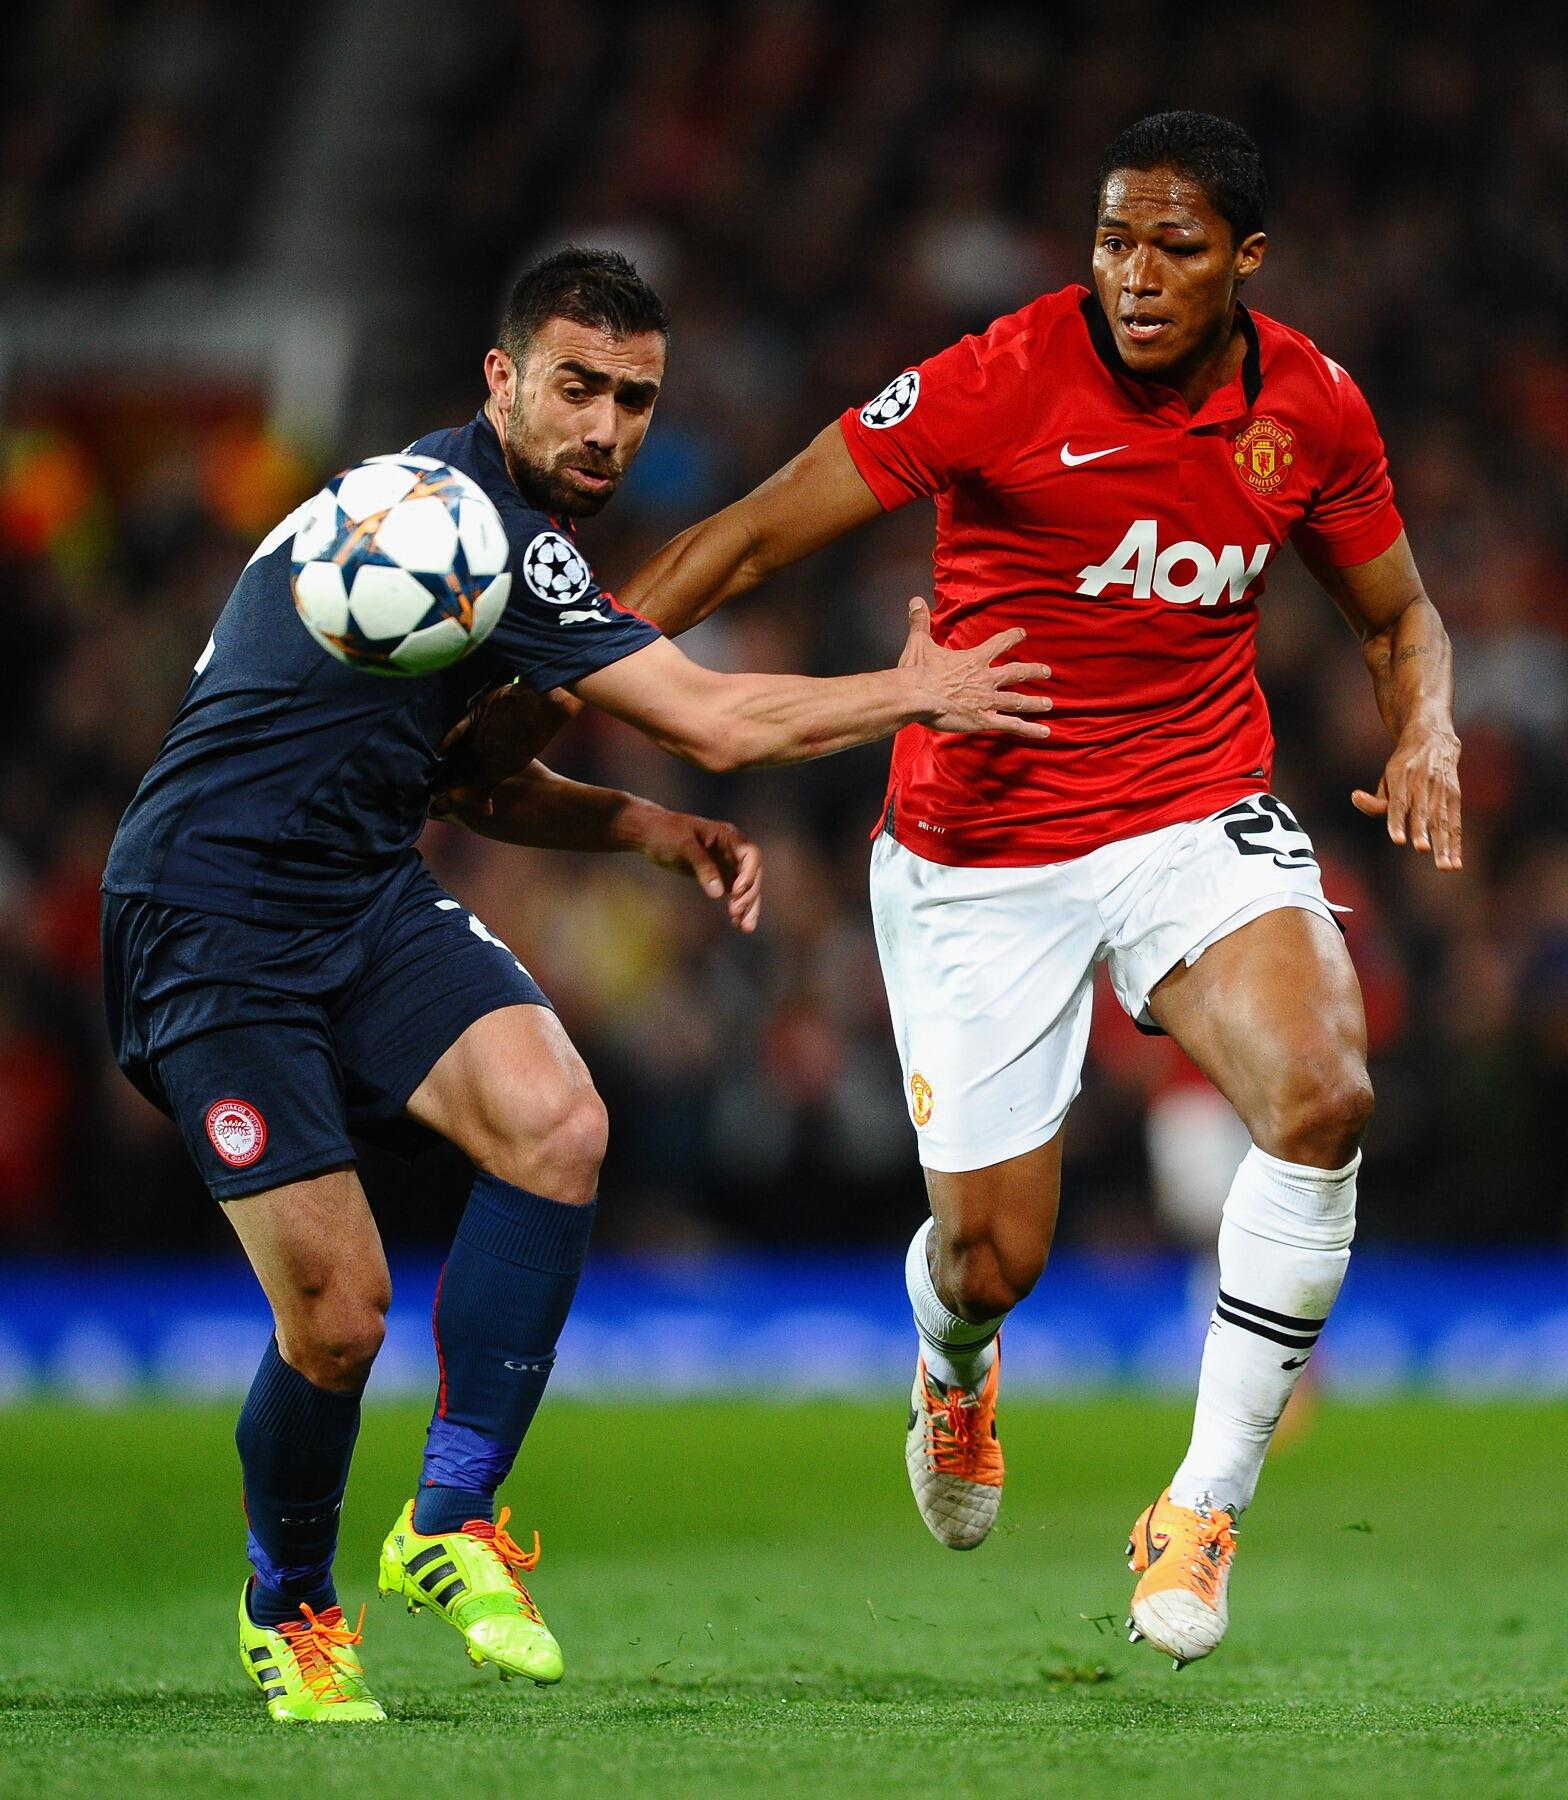 Man of the Match 2/3 - Retweet this if Antonio Valencia (@7AntoV) gets your vote for #mufc against Olympiacos. http://t.co/aYYLaoyZl0